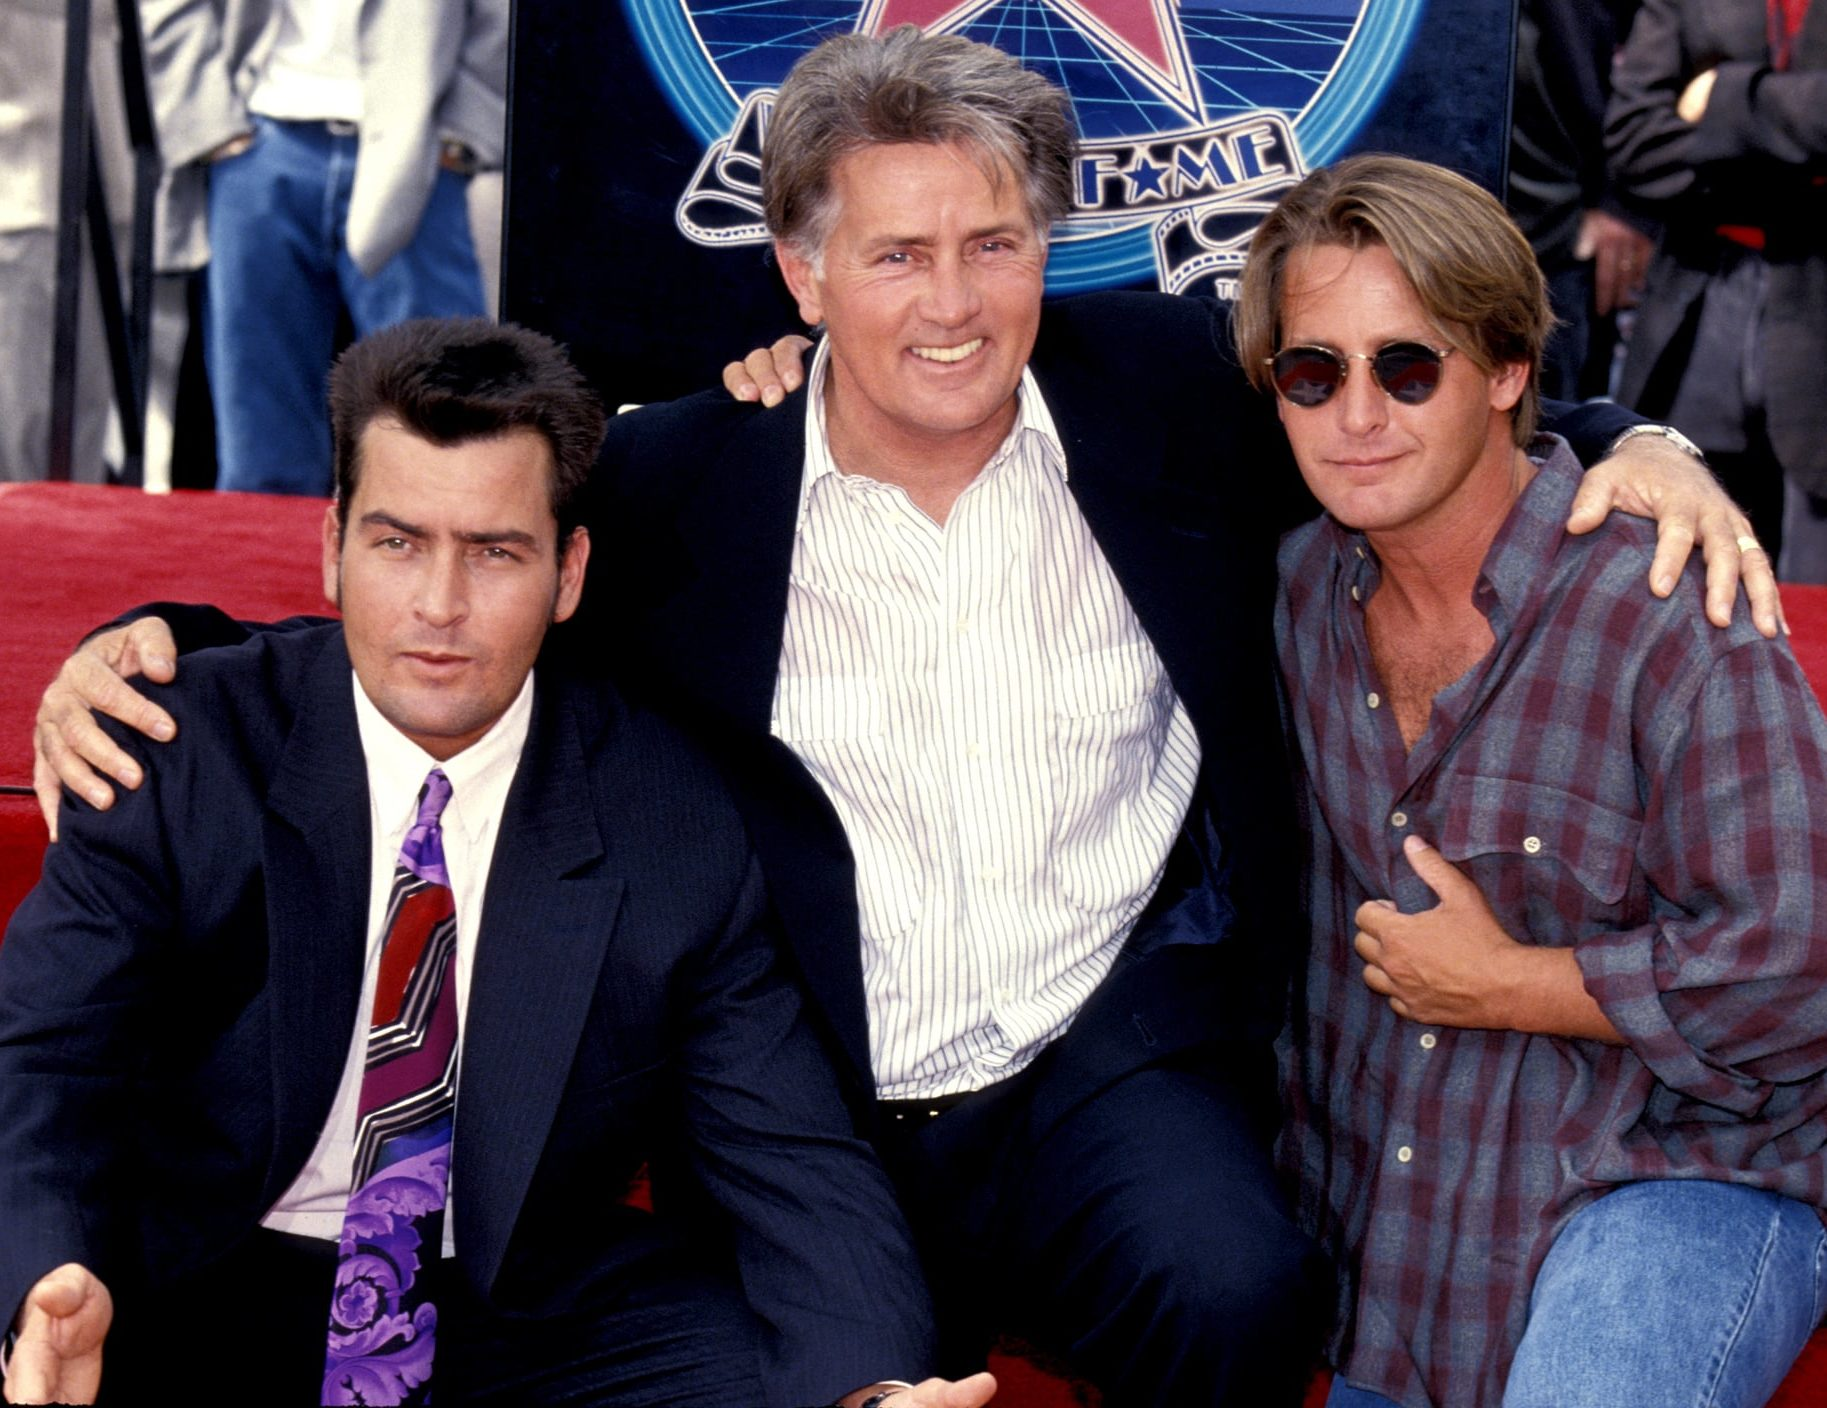 Martin Sheen Charlie Sheen Emilio Estevez e1610712894988 20 Things You Probably Didn't Know About The 1983 Film The Outsiders